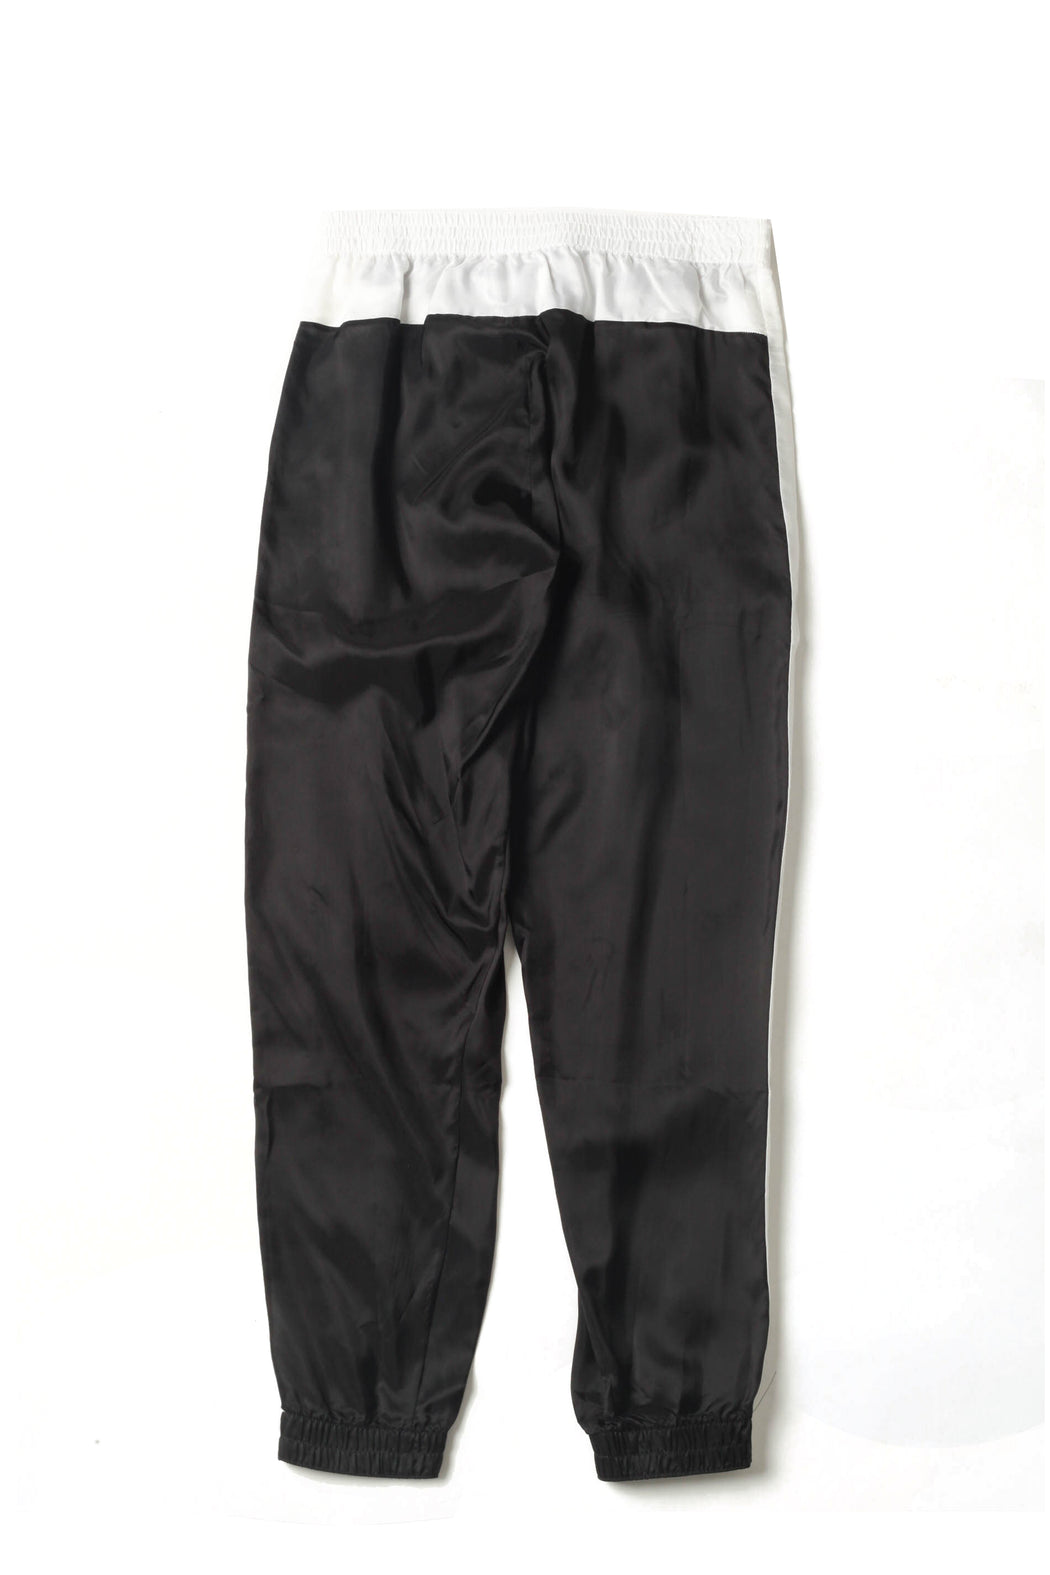 Ypres - Black Technical Cupro Track Pants